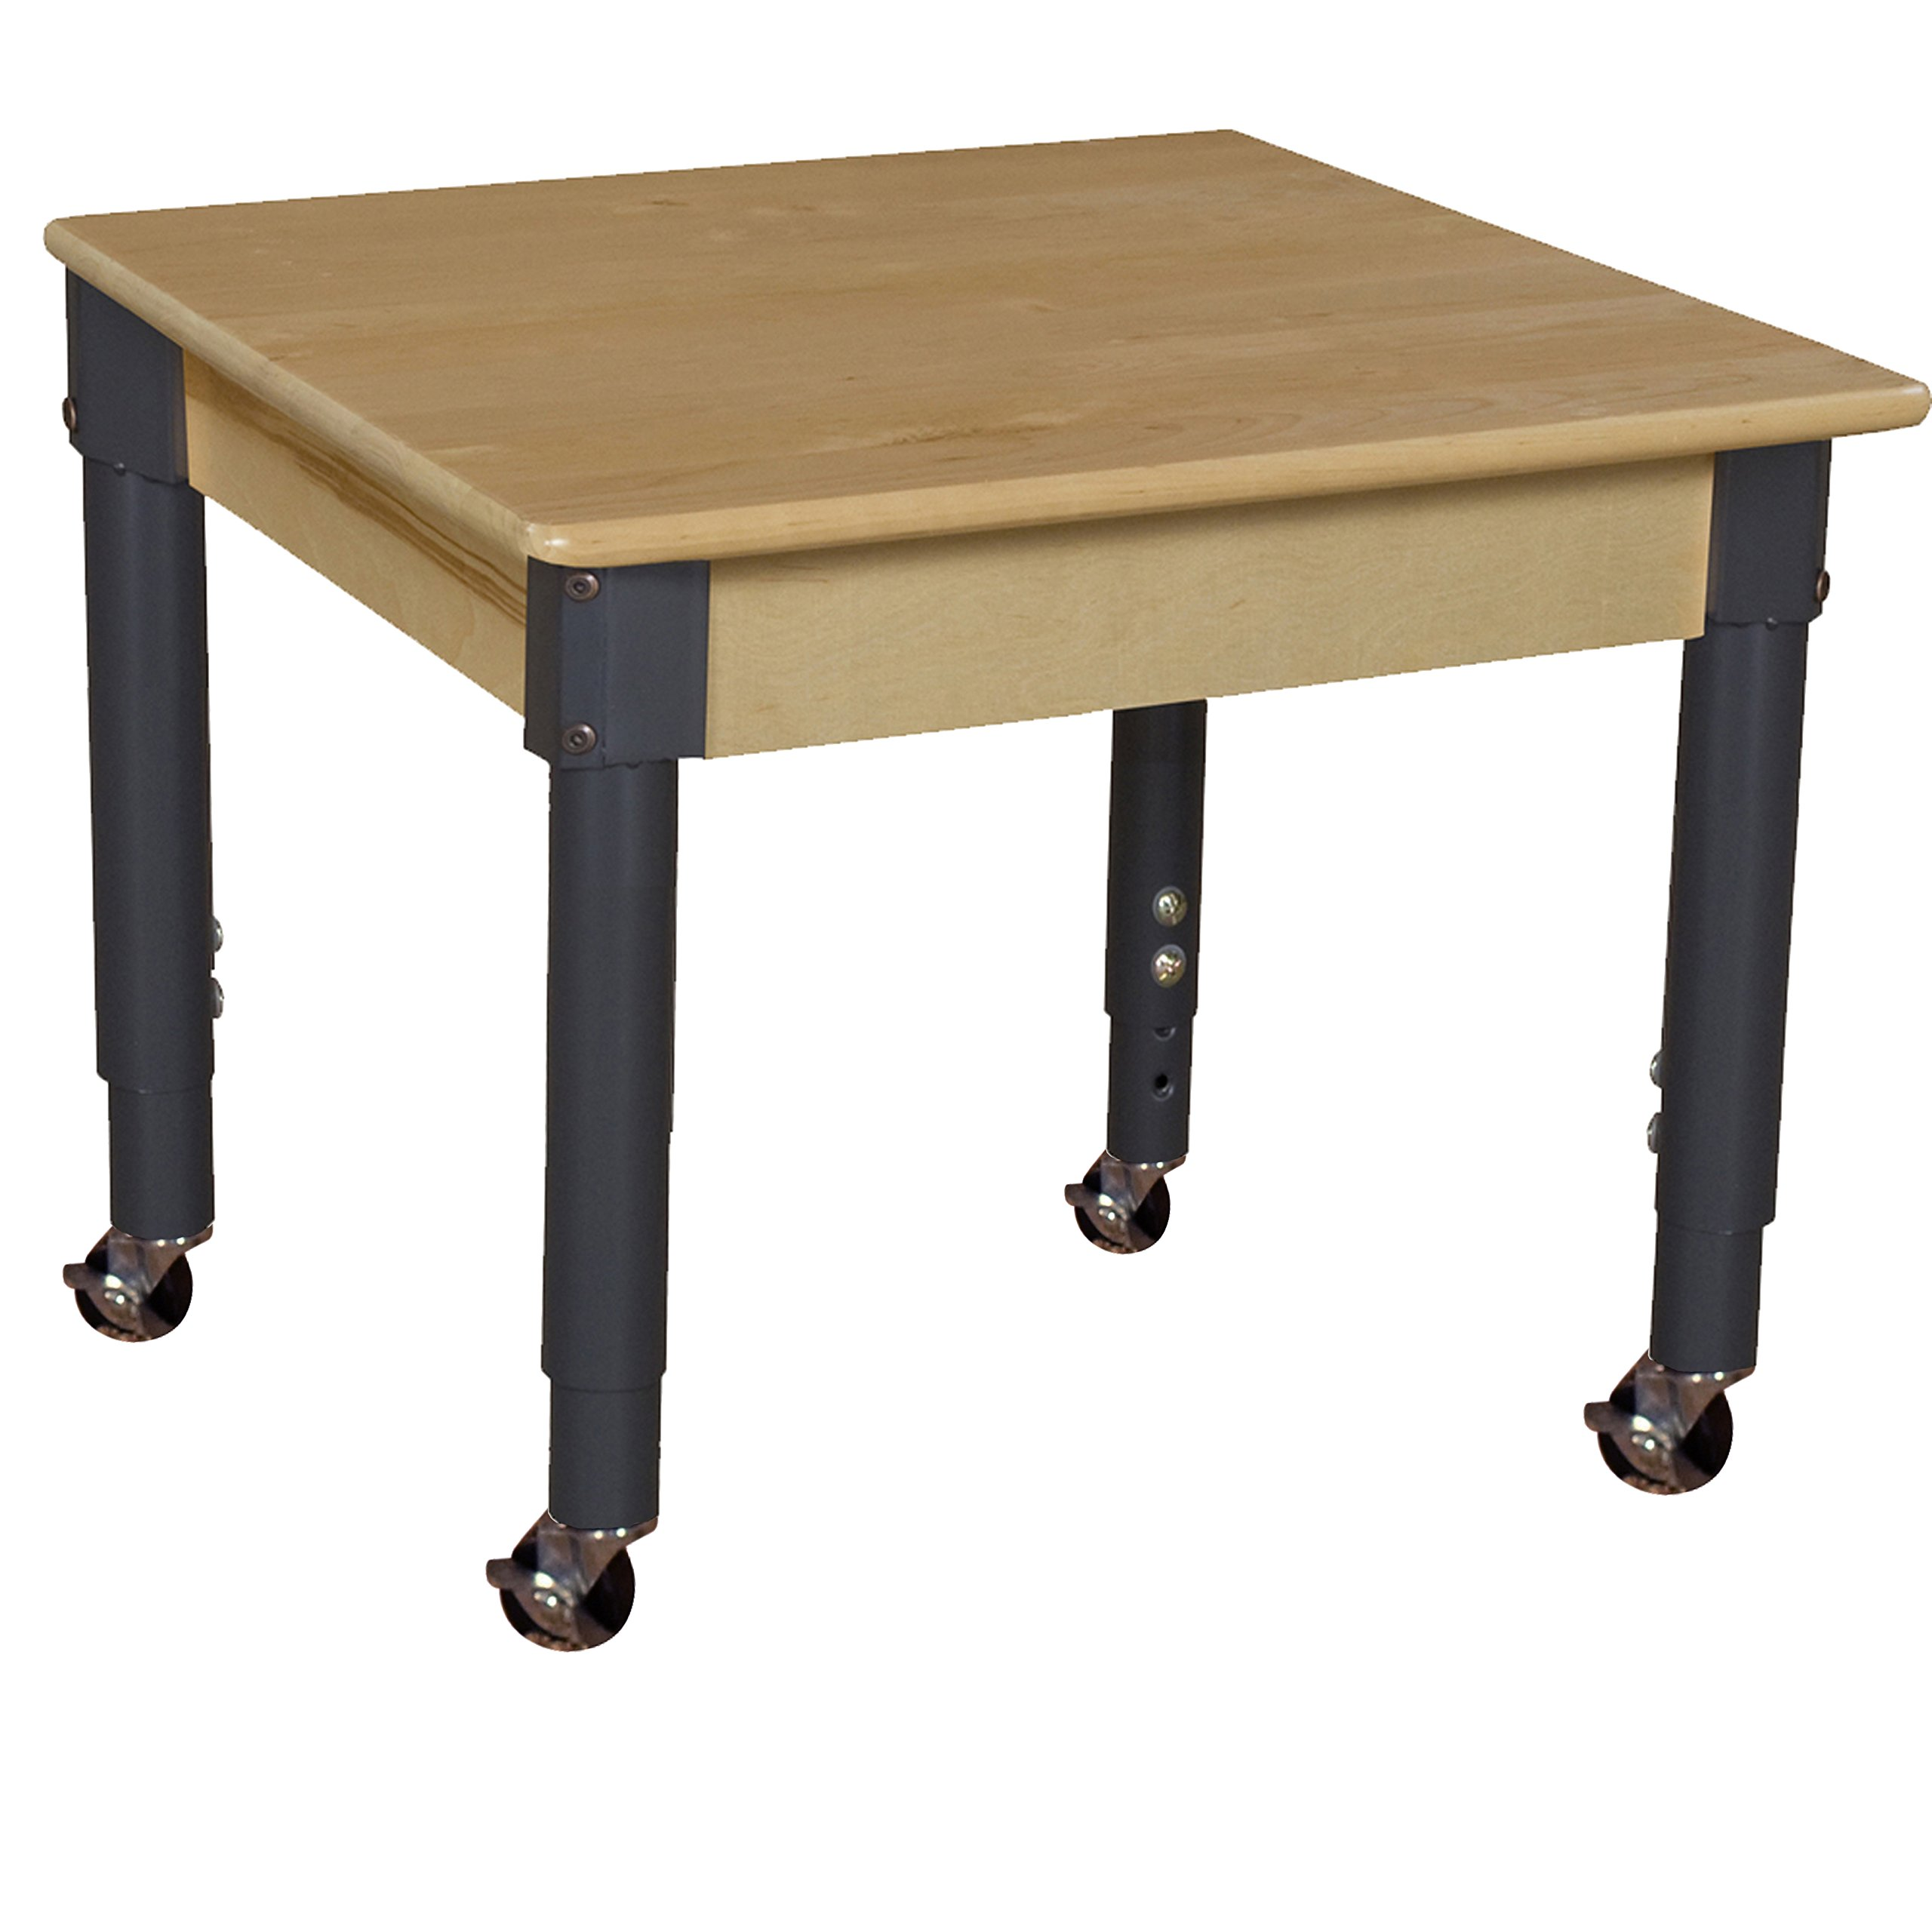 Wood Designs WD824A1217C6 Mobile 24'' Square Hardwood Table with 14''-19'' Adjustable Legs